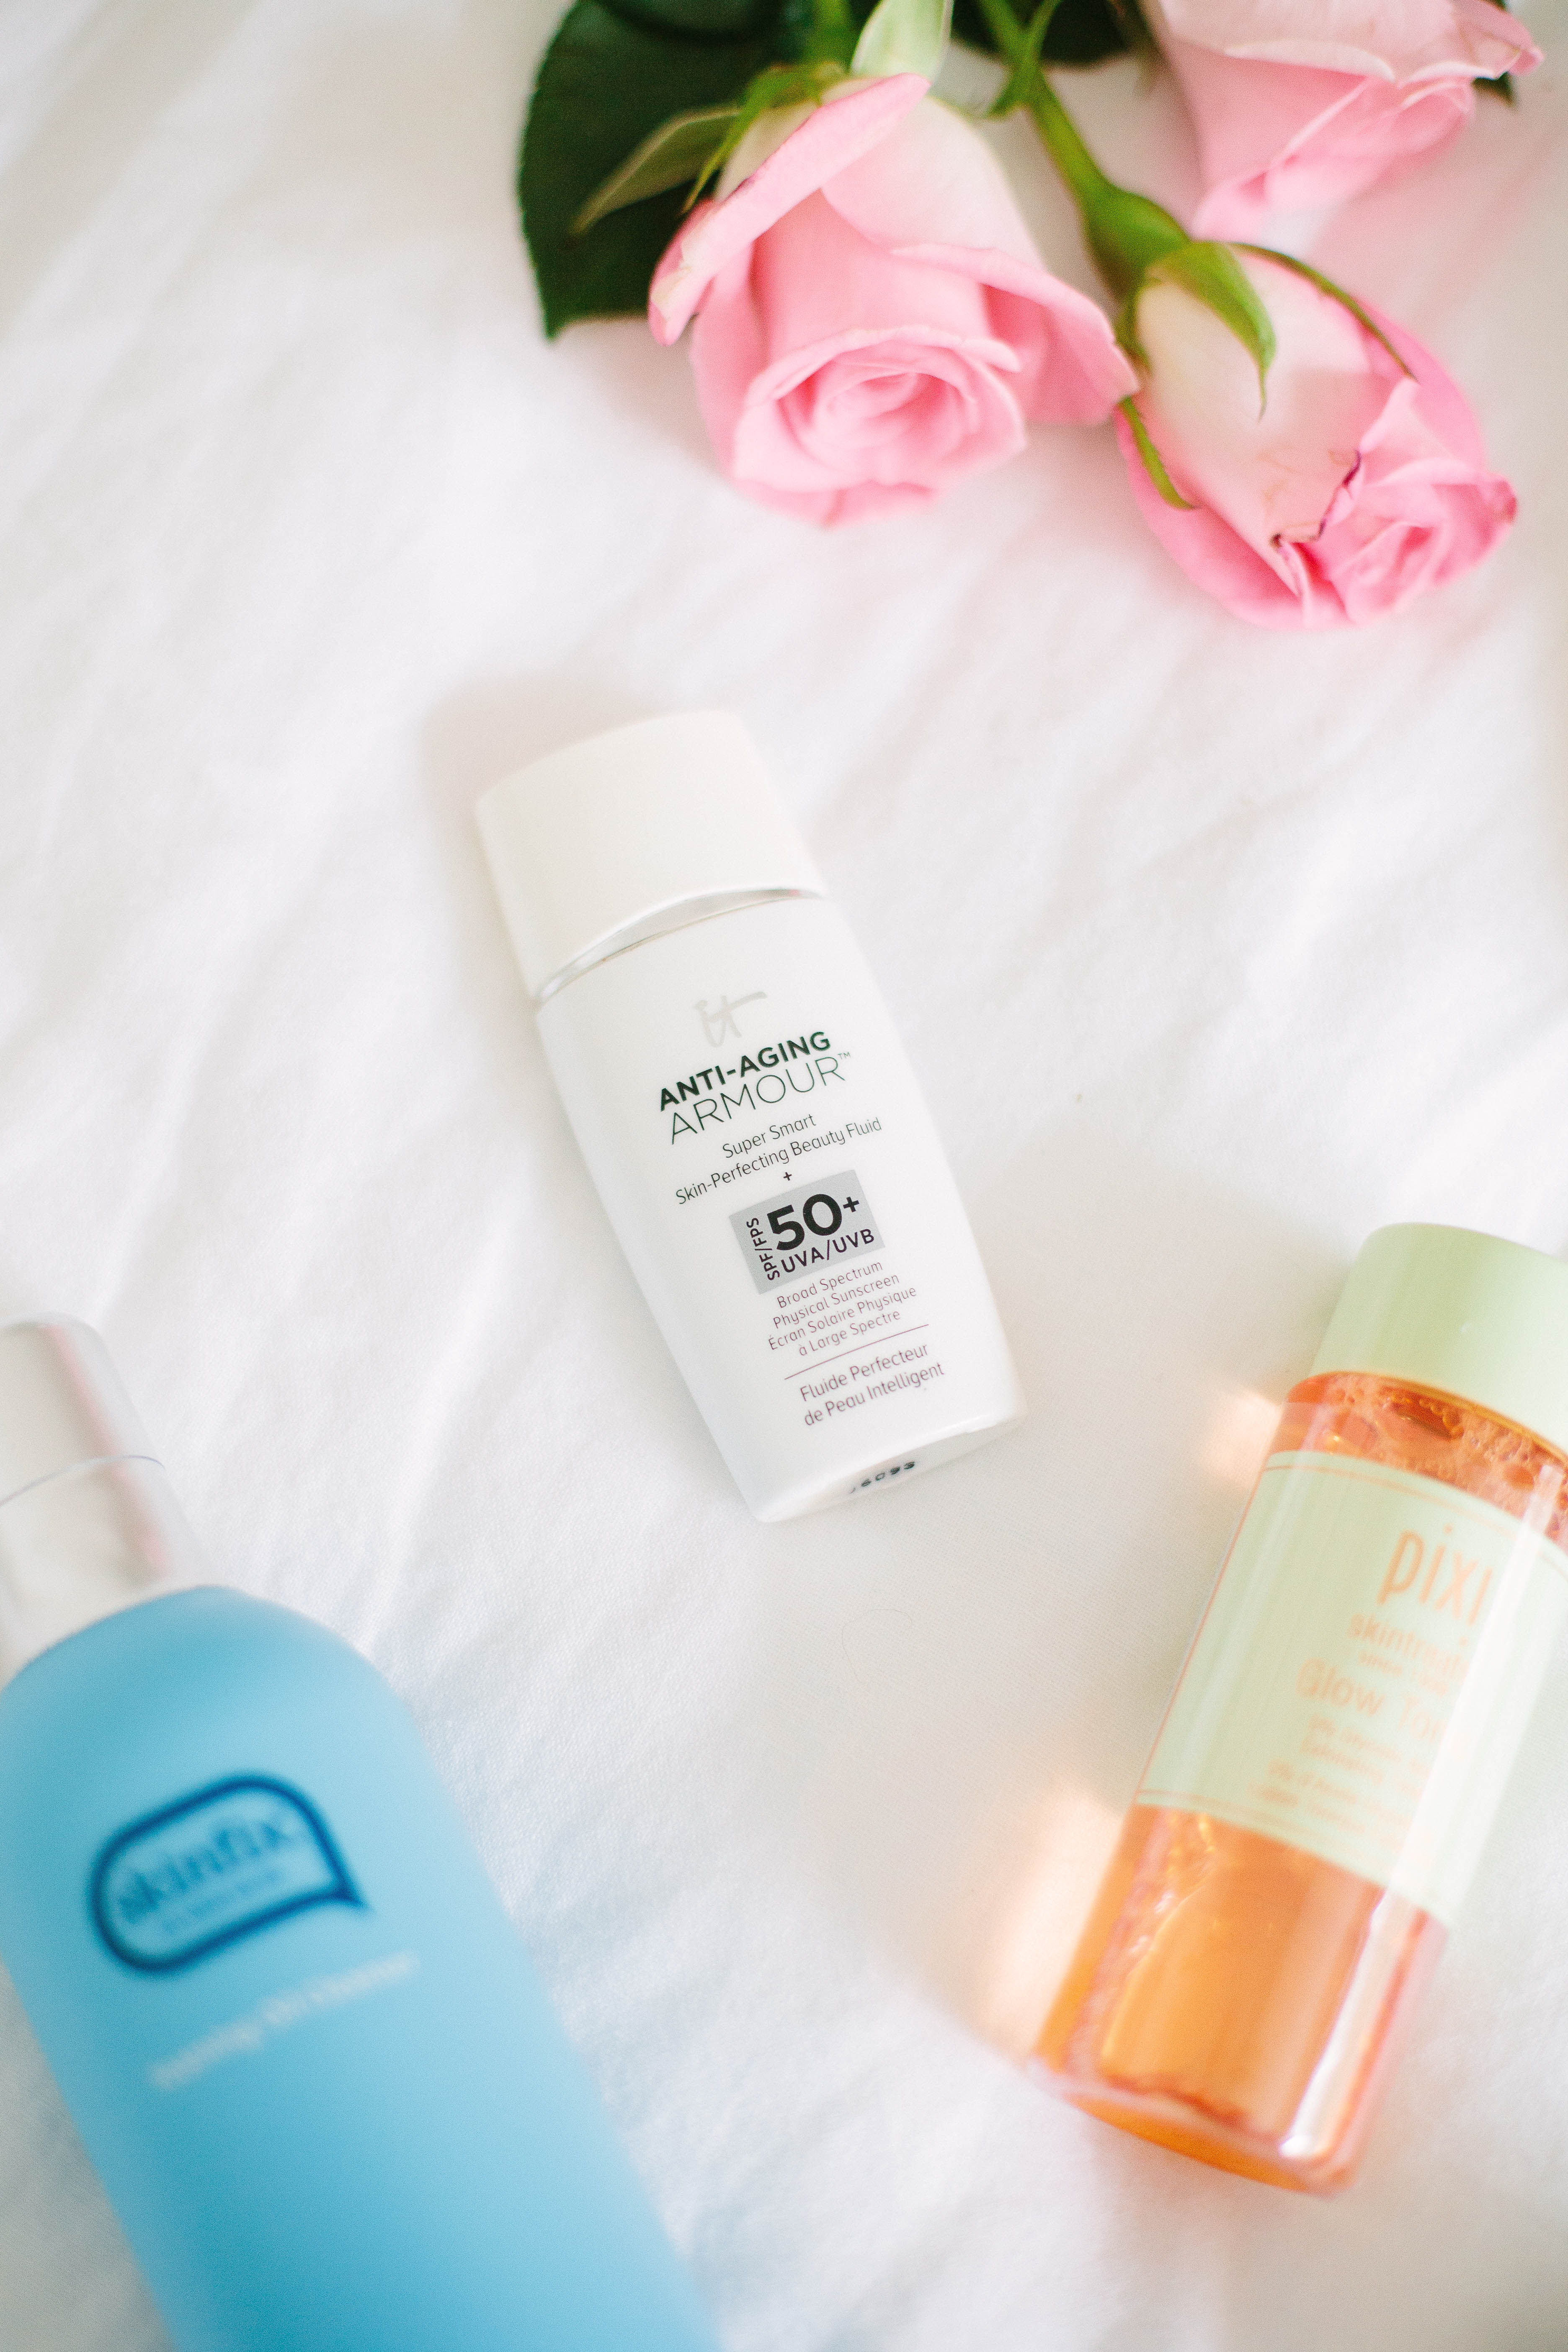 Pregnant and wondering what skincare products are safe to use? Check out this Safe for Pregnancy Skincare Routine and tips on what to look for in products!